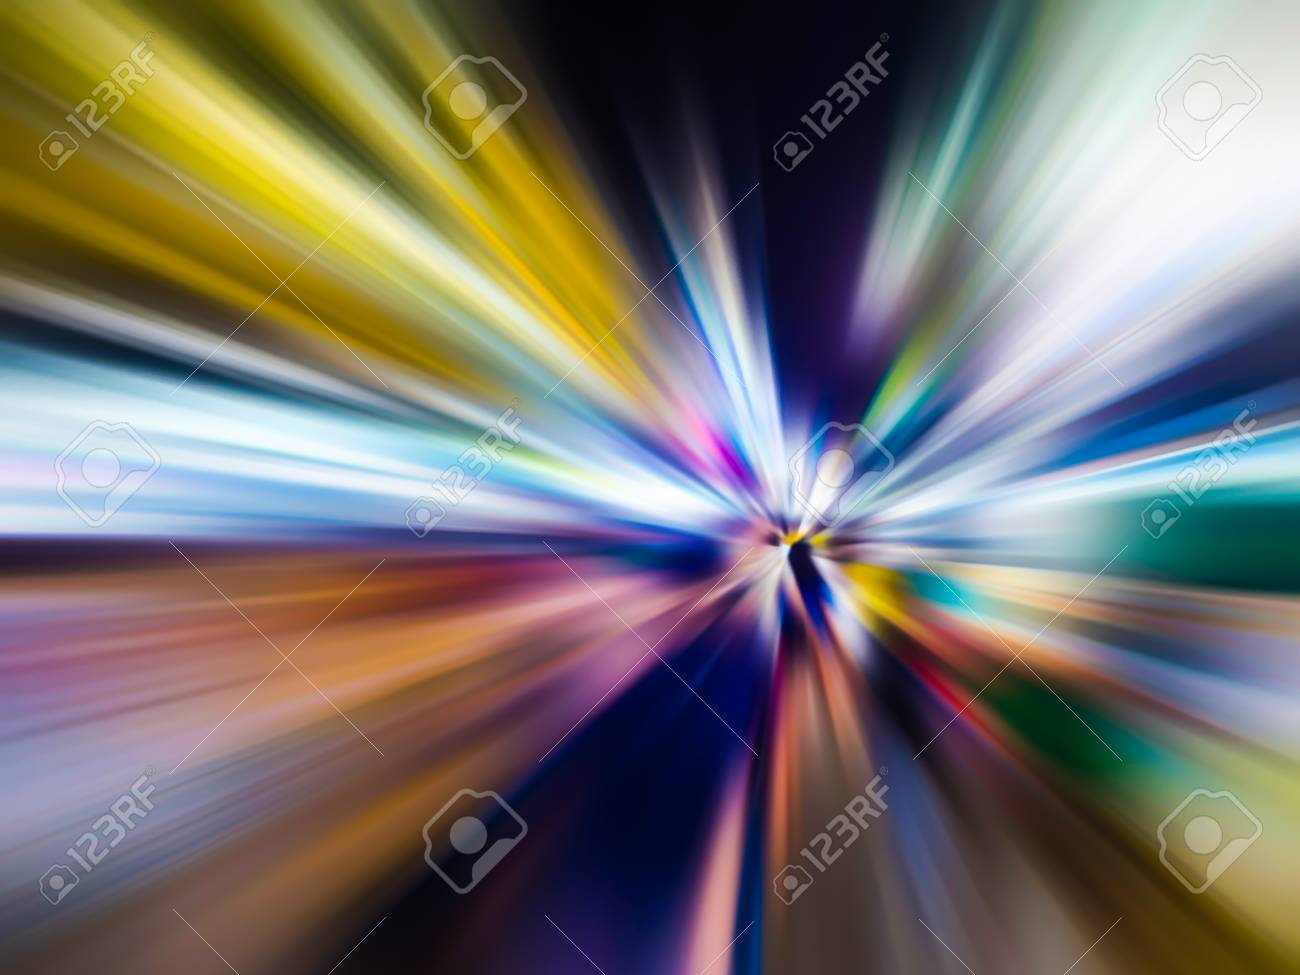 Abstract speed motion blur in city on night road and neon light. - 126122488